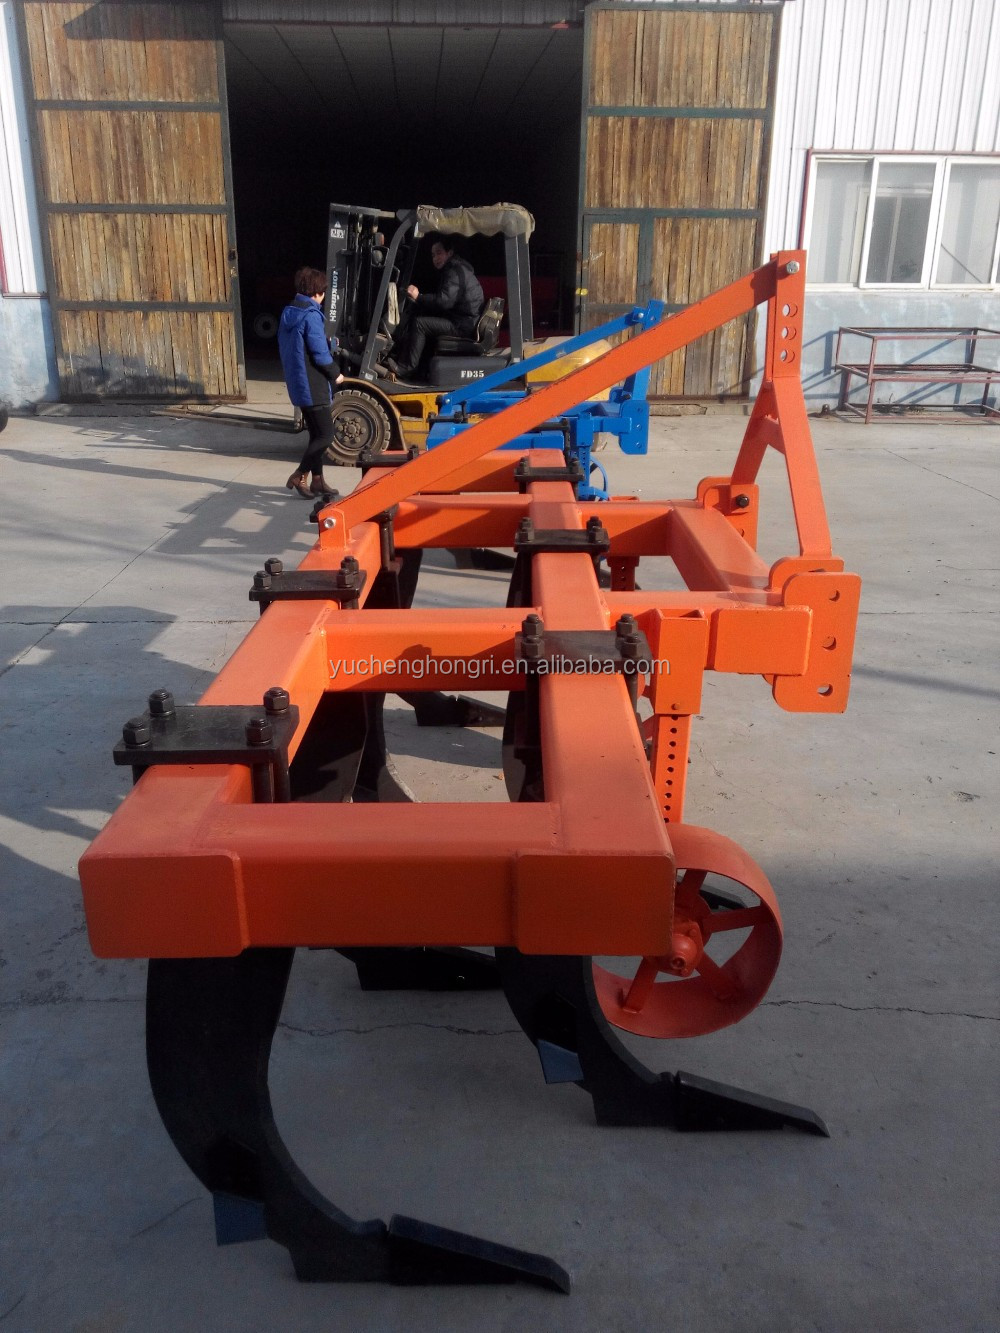 7 tines with heat treatment chisel plow